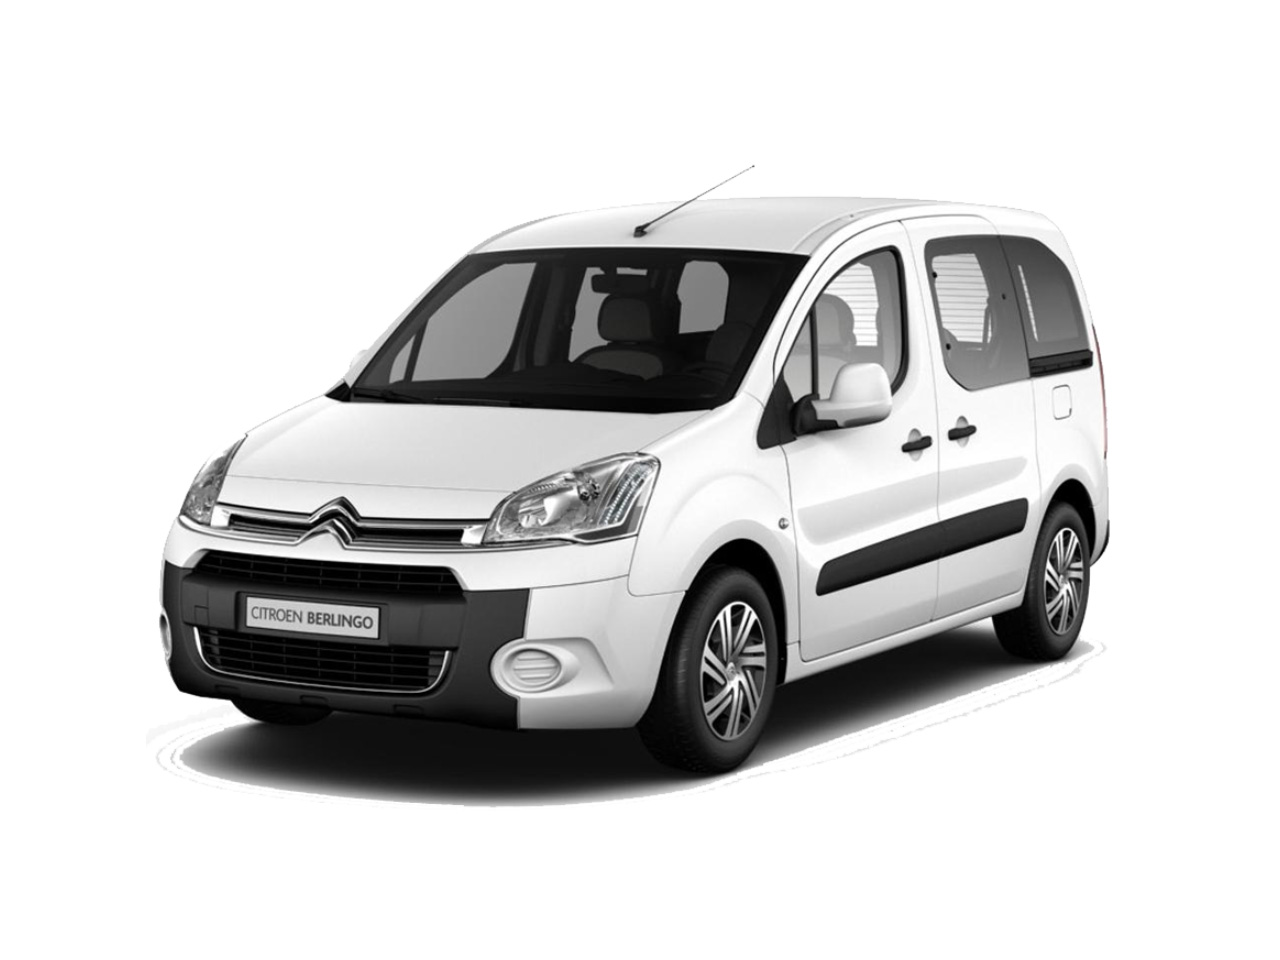 2017 citroen berlingo prices in uae gulf specs reviews for dubai abu dhabi and sharjah. Black Bedroom Furniture Sets. Home Design Ideas